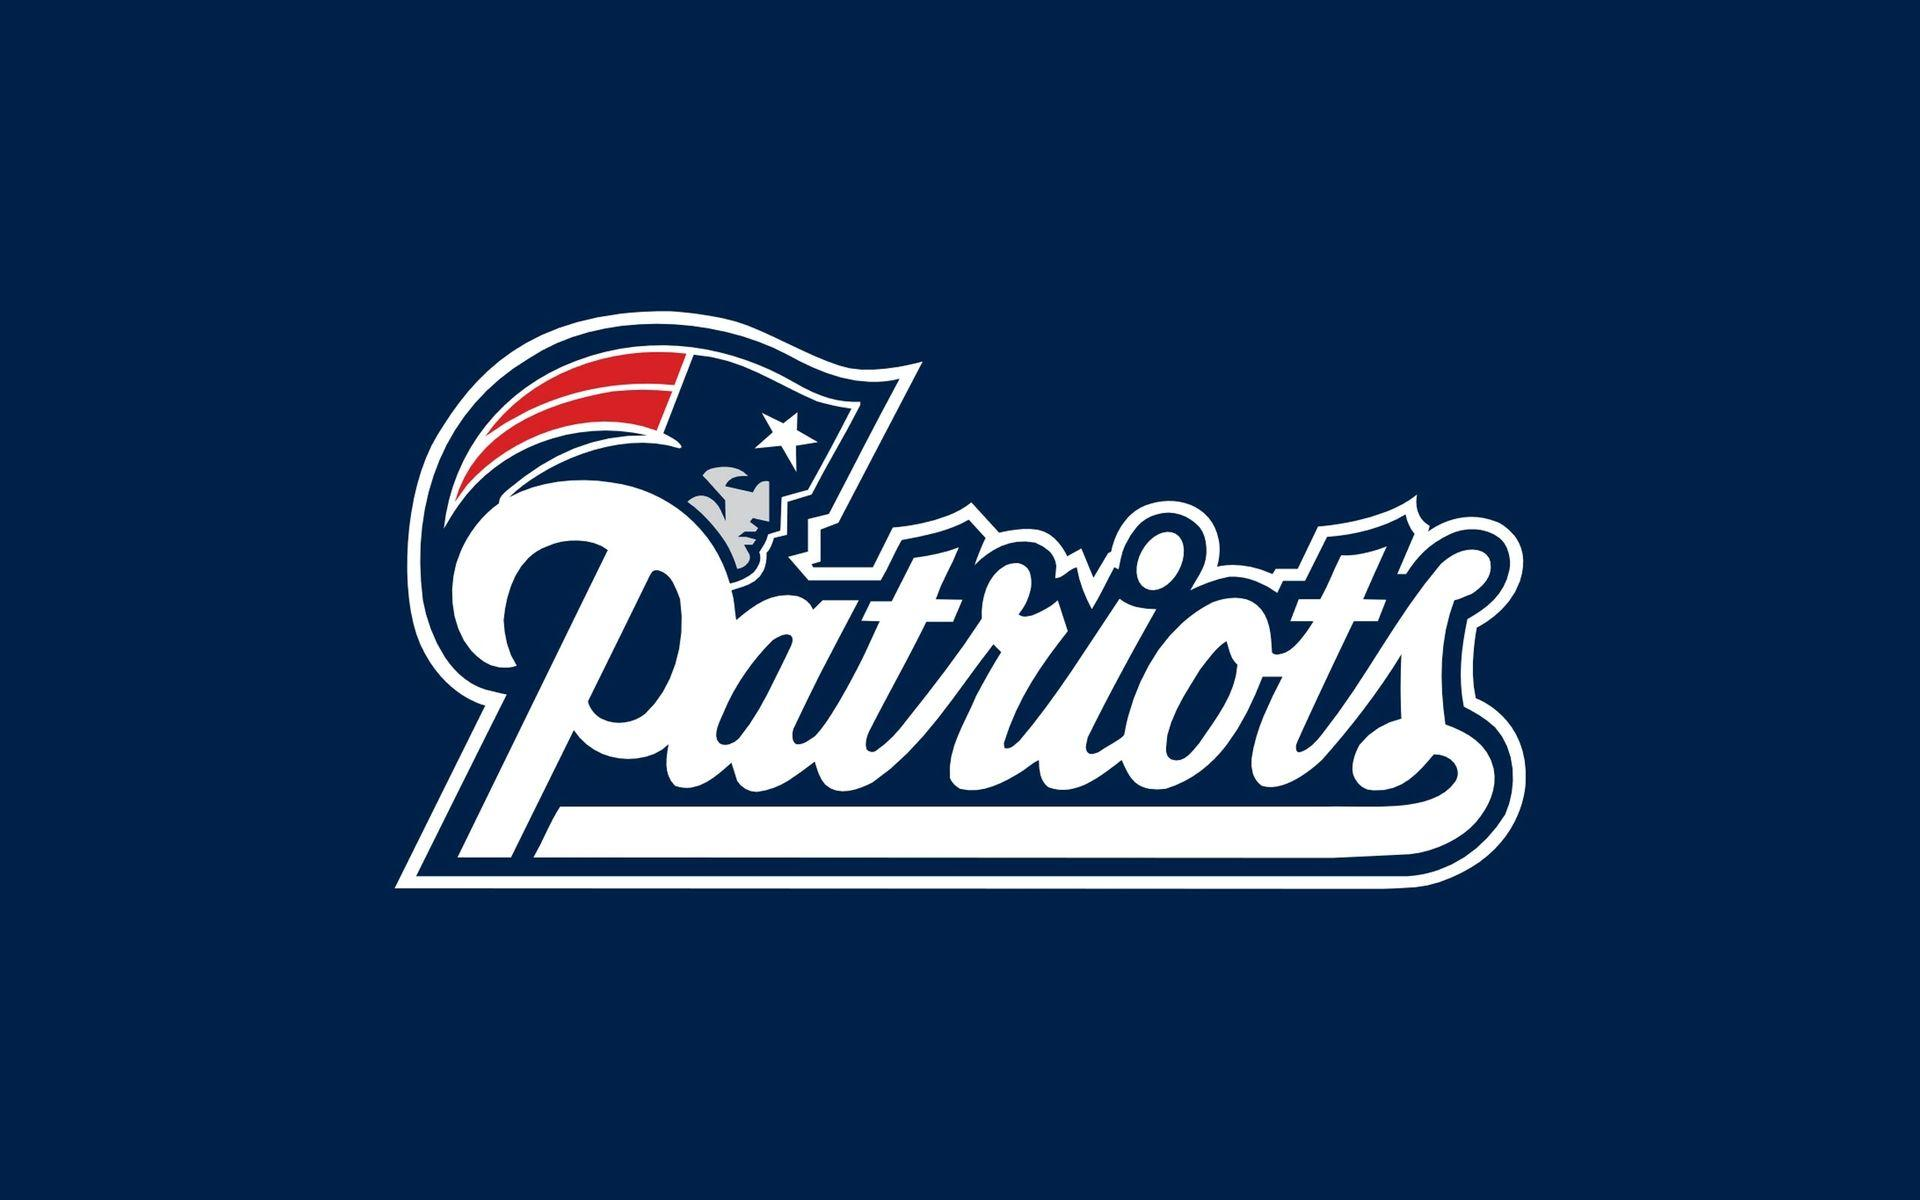 New England Patriots Wallpapers For Android Picture Photo and Image